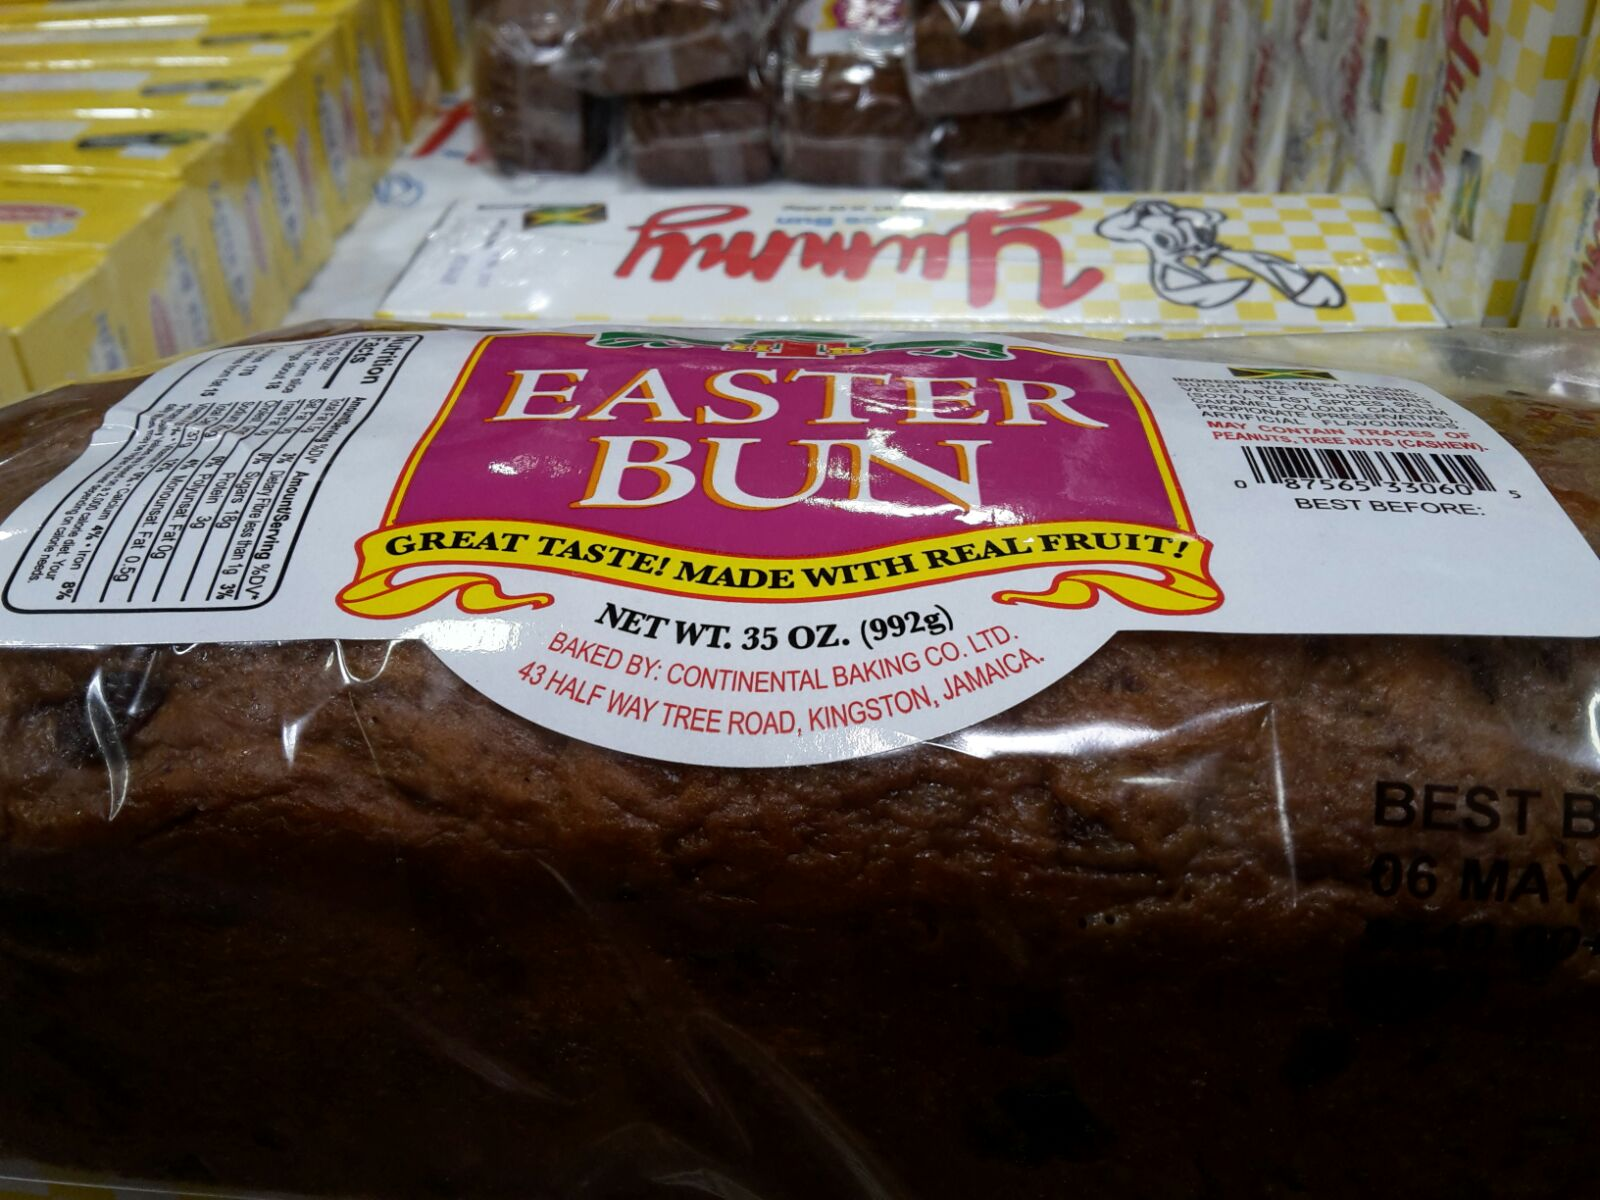 jamaican_bun_at_easter